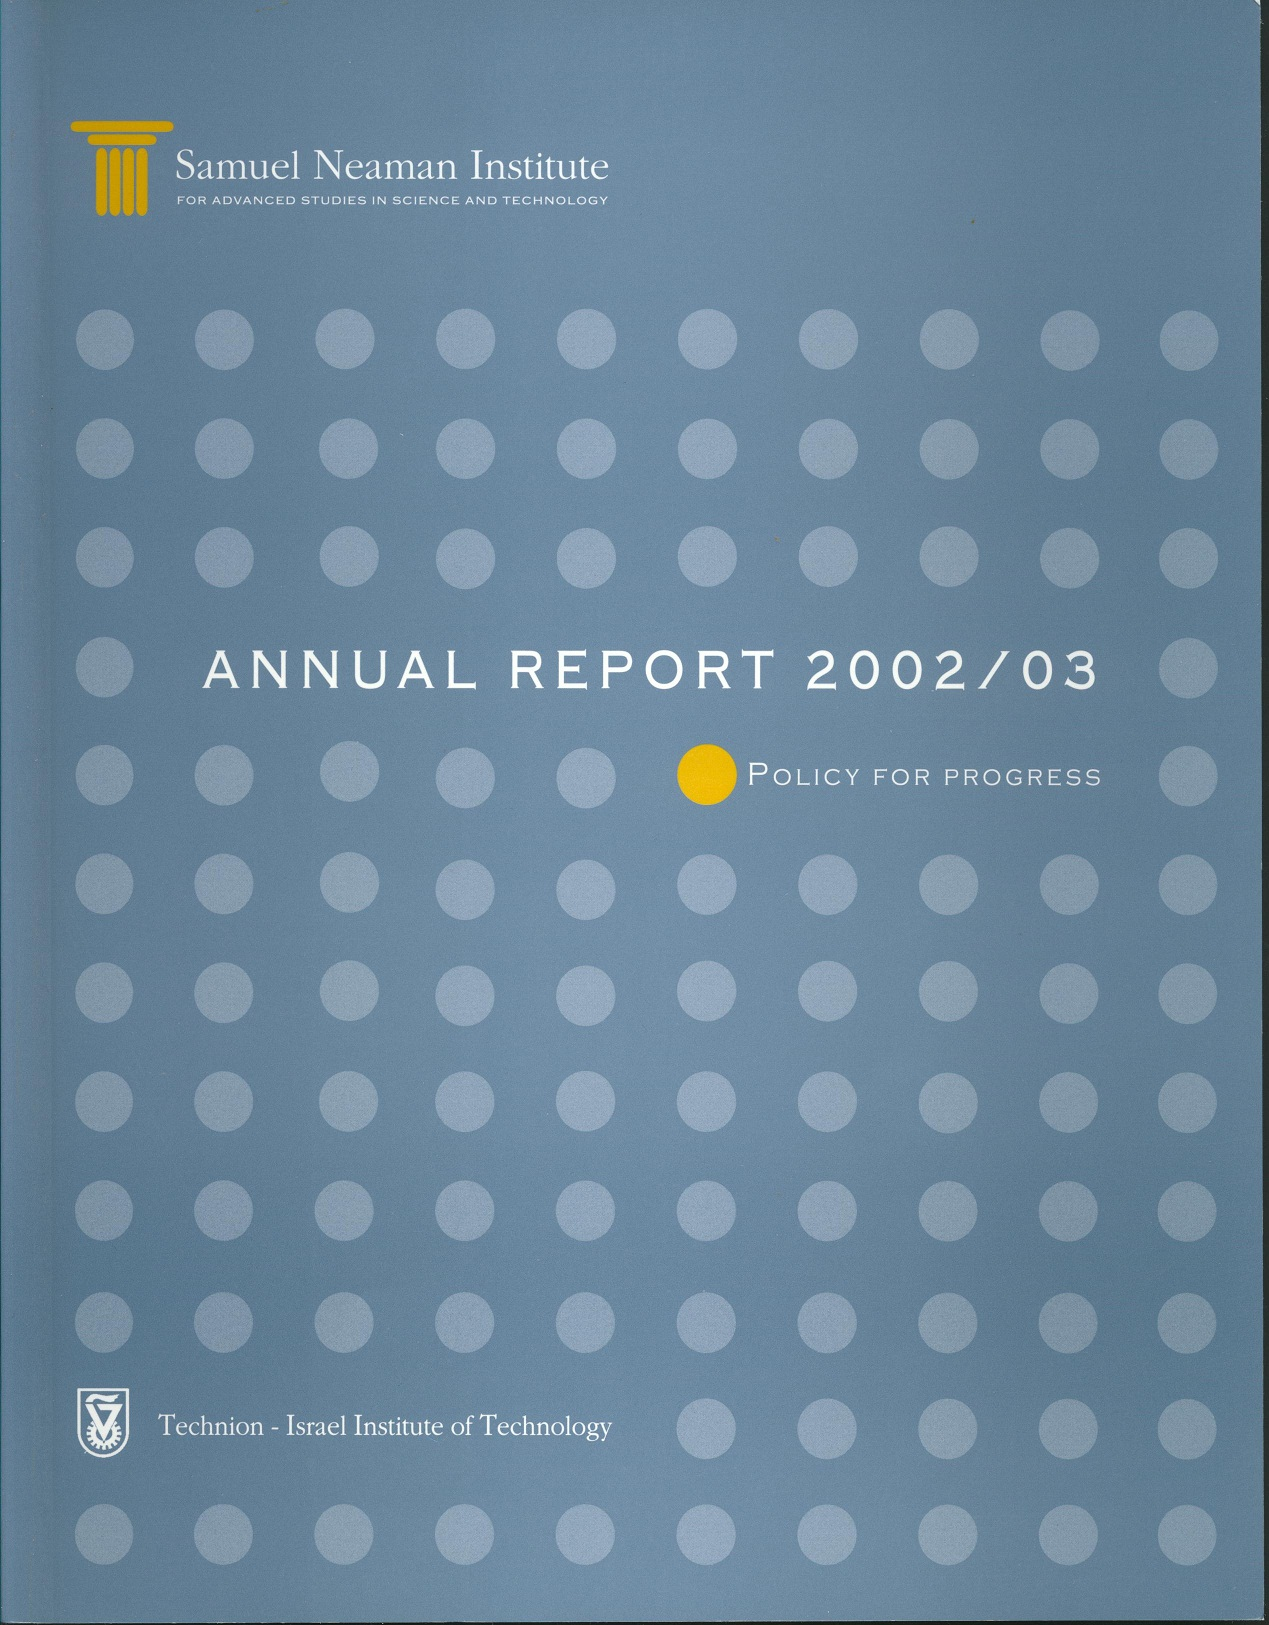 Annual Report 2002-2003 Samuel Neaman Institute